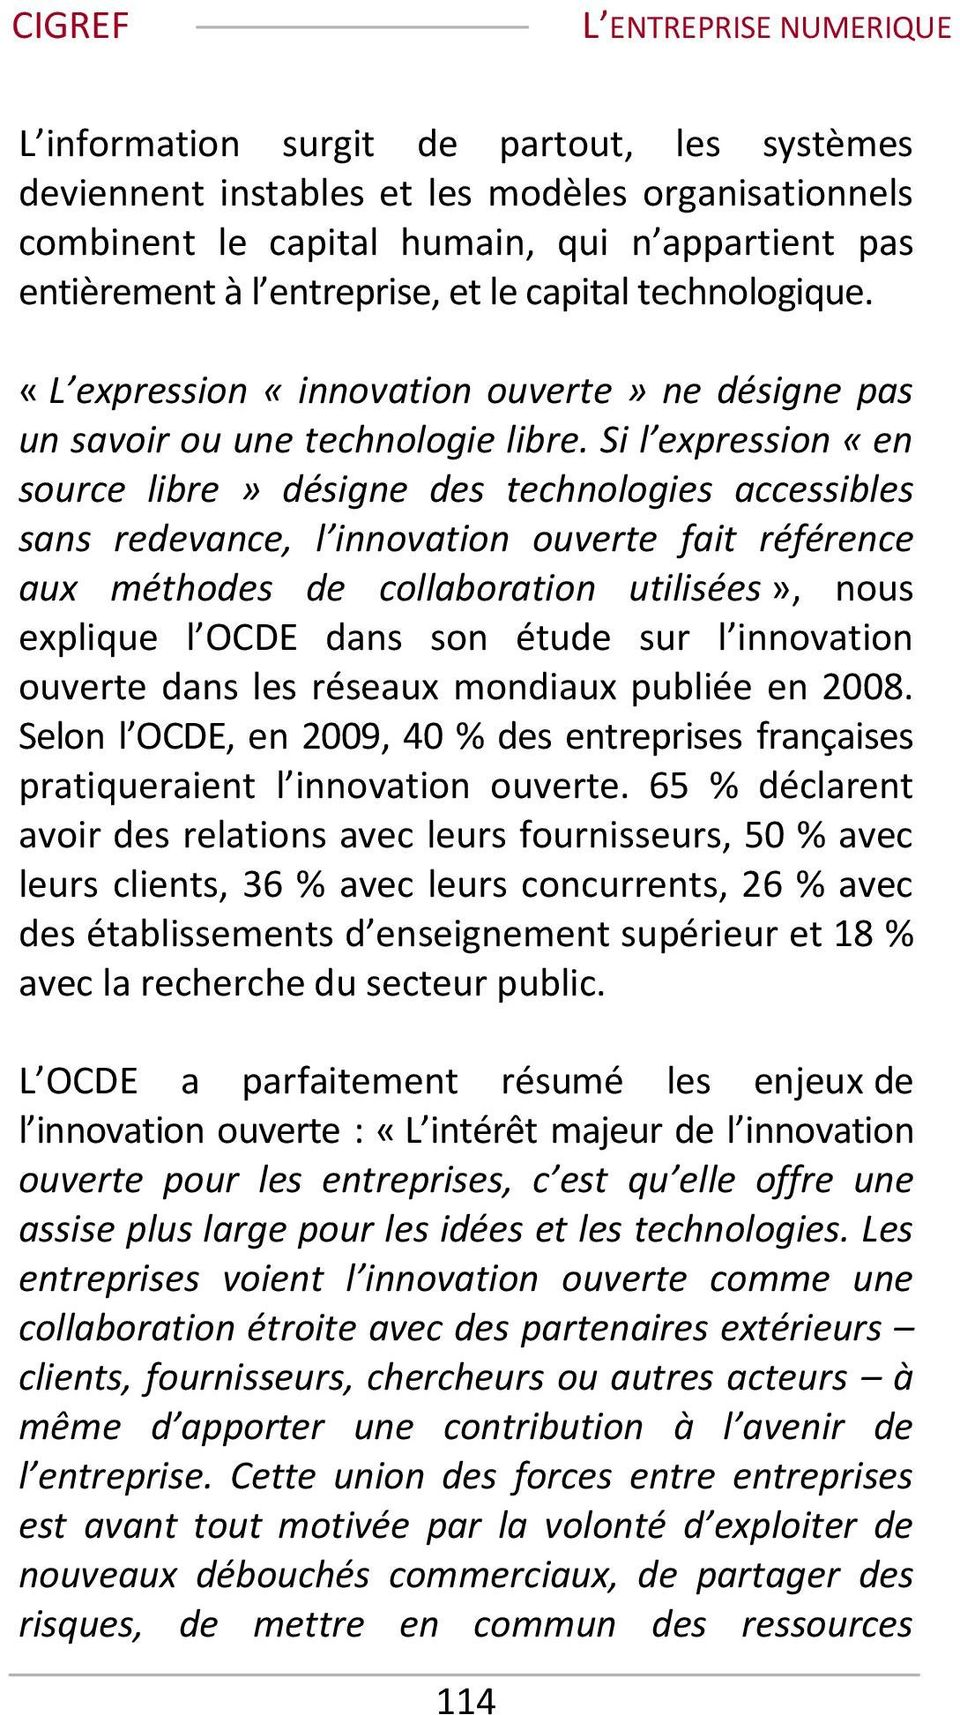 Si l expression «en source libre» désigne des technologies accessibles sans redevance, l innovation ouverte fait référence aux méthodes de collaboration utilisées», nous explique l OCDE dans son